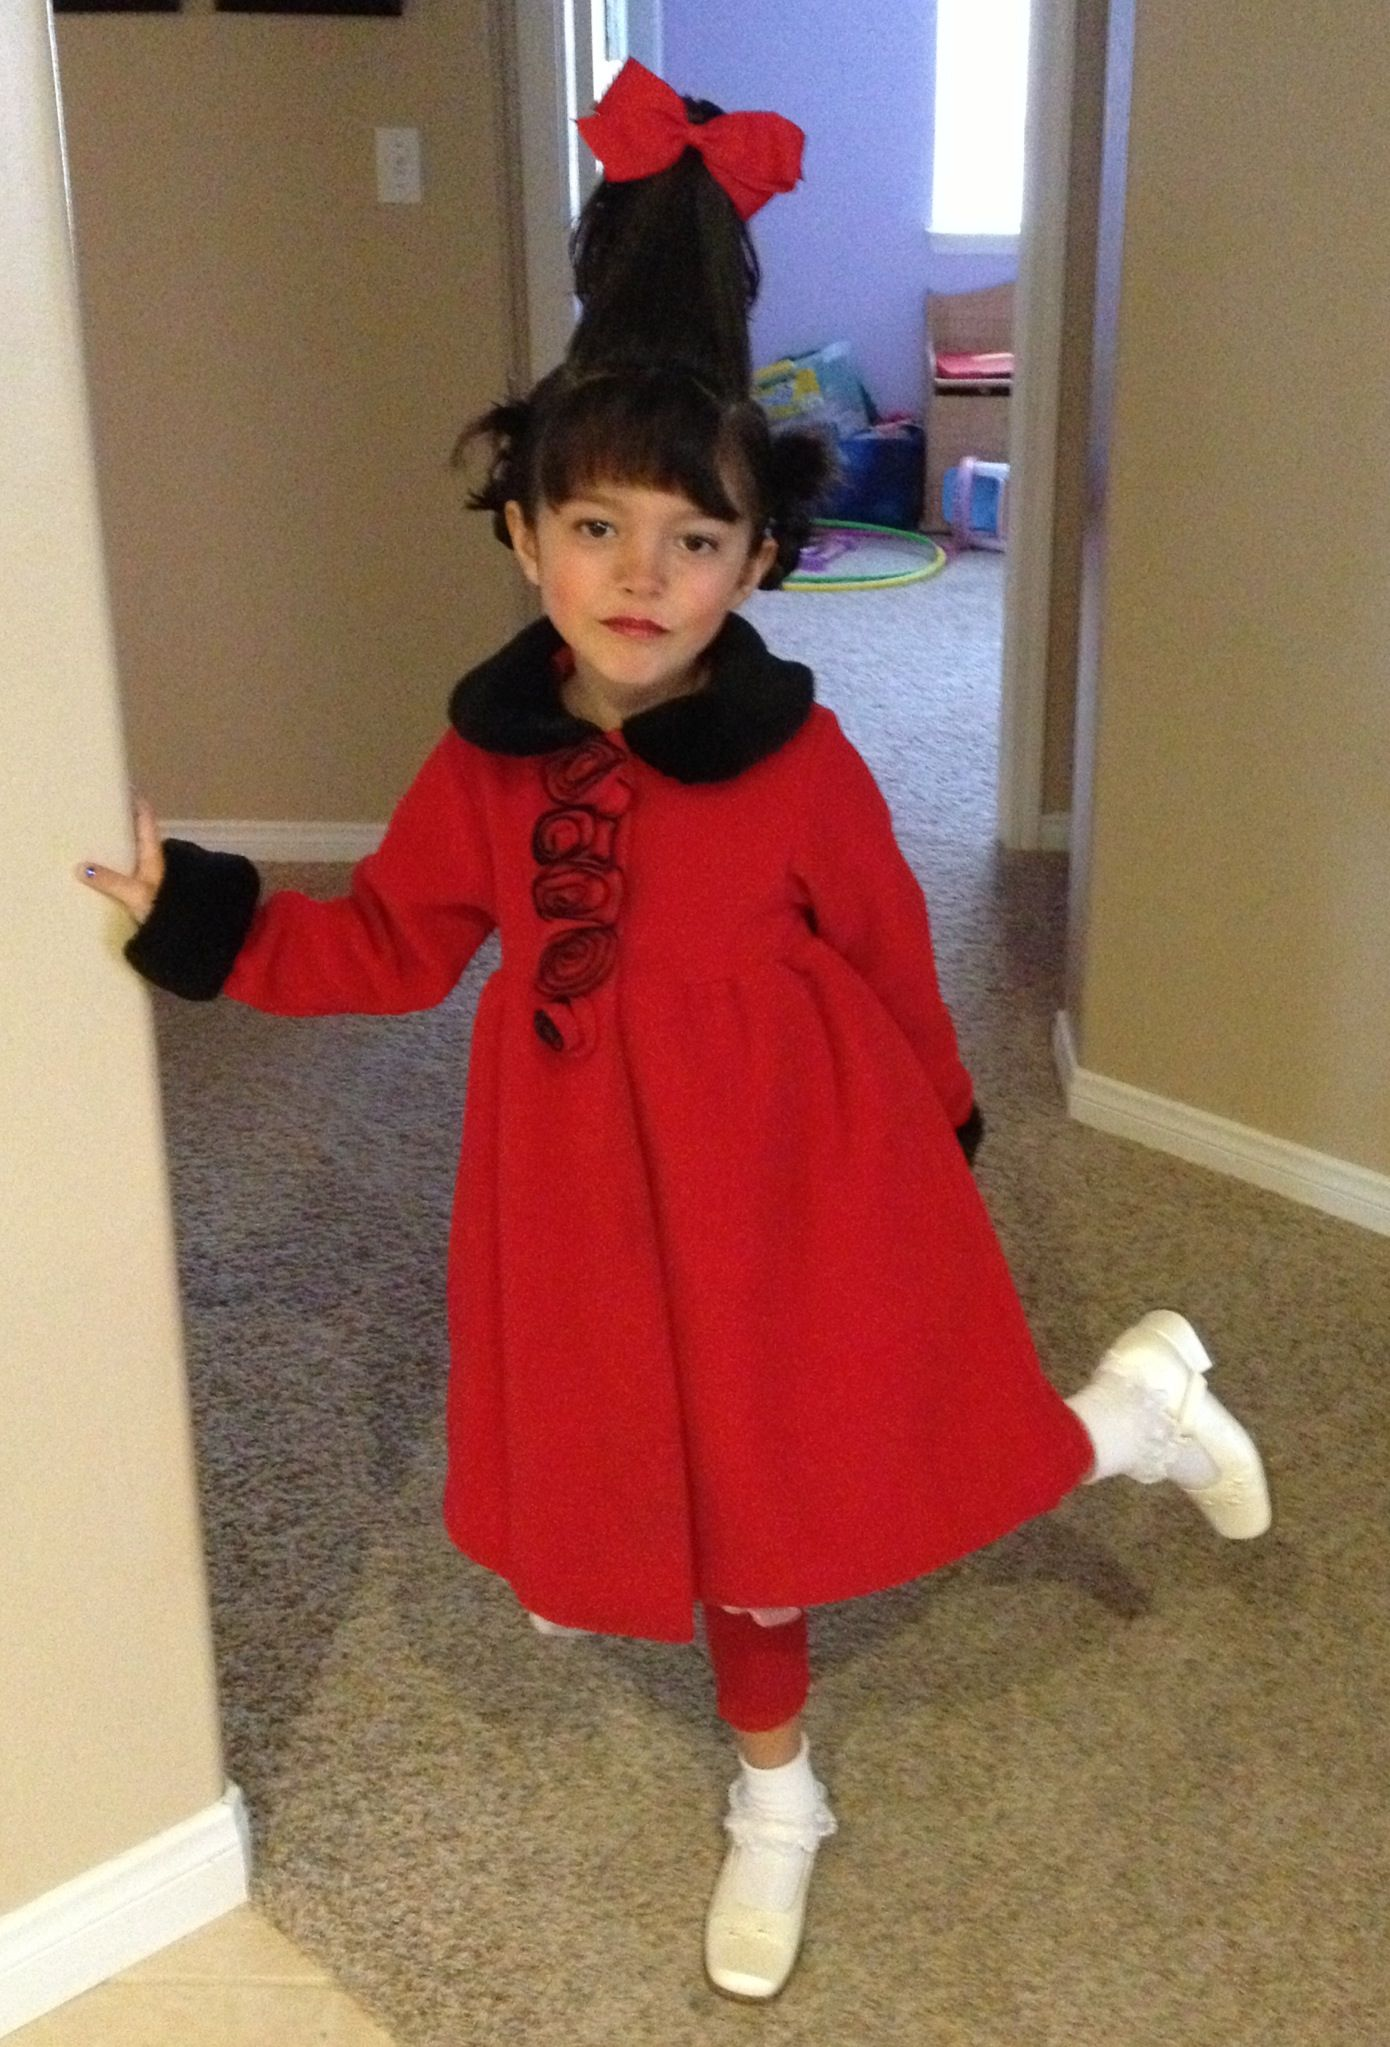 Christmas dress up - Dr Seuss Dress Up Day Coastal Christian School This Is My Who From